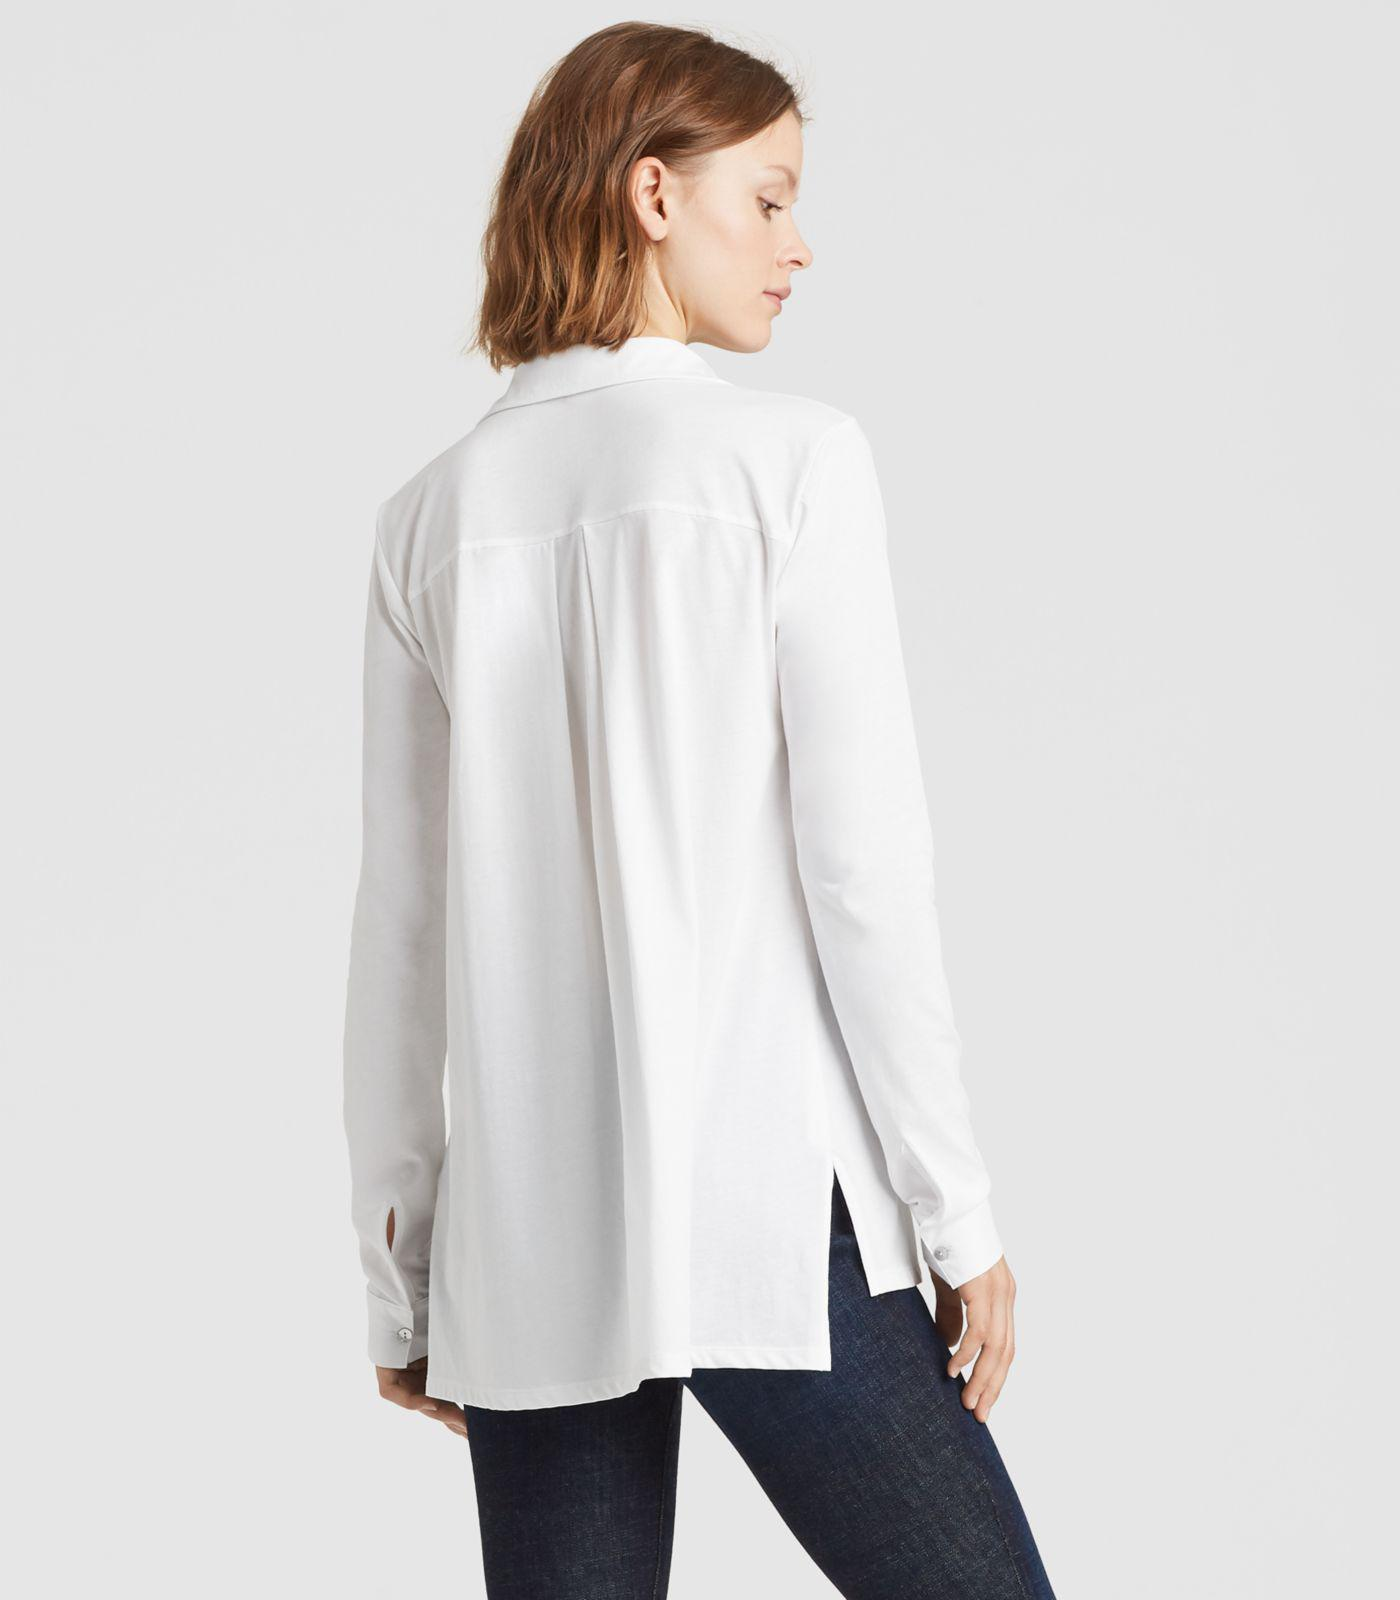 c722fb60 Eileen Fisher - White Organic Cotton Easy Jersey Classic Collar Shirt -  Lyst. View fullscreen